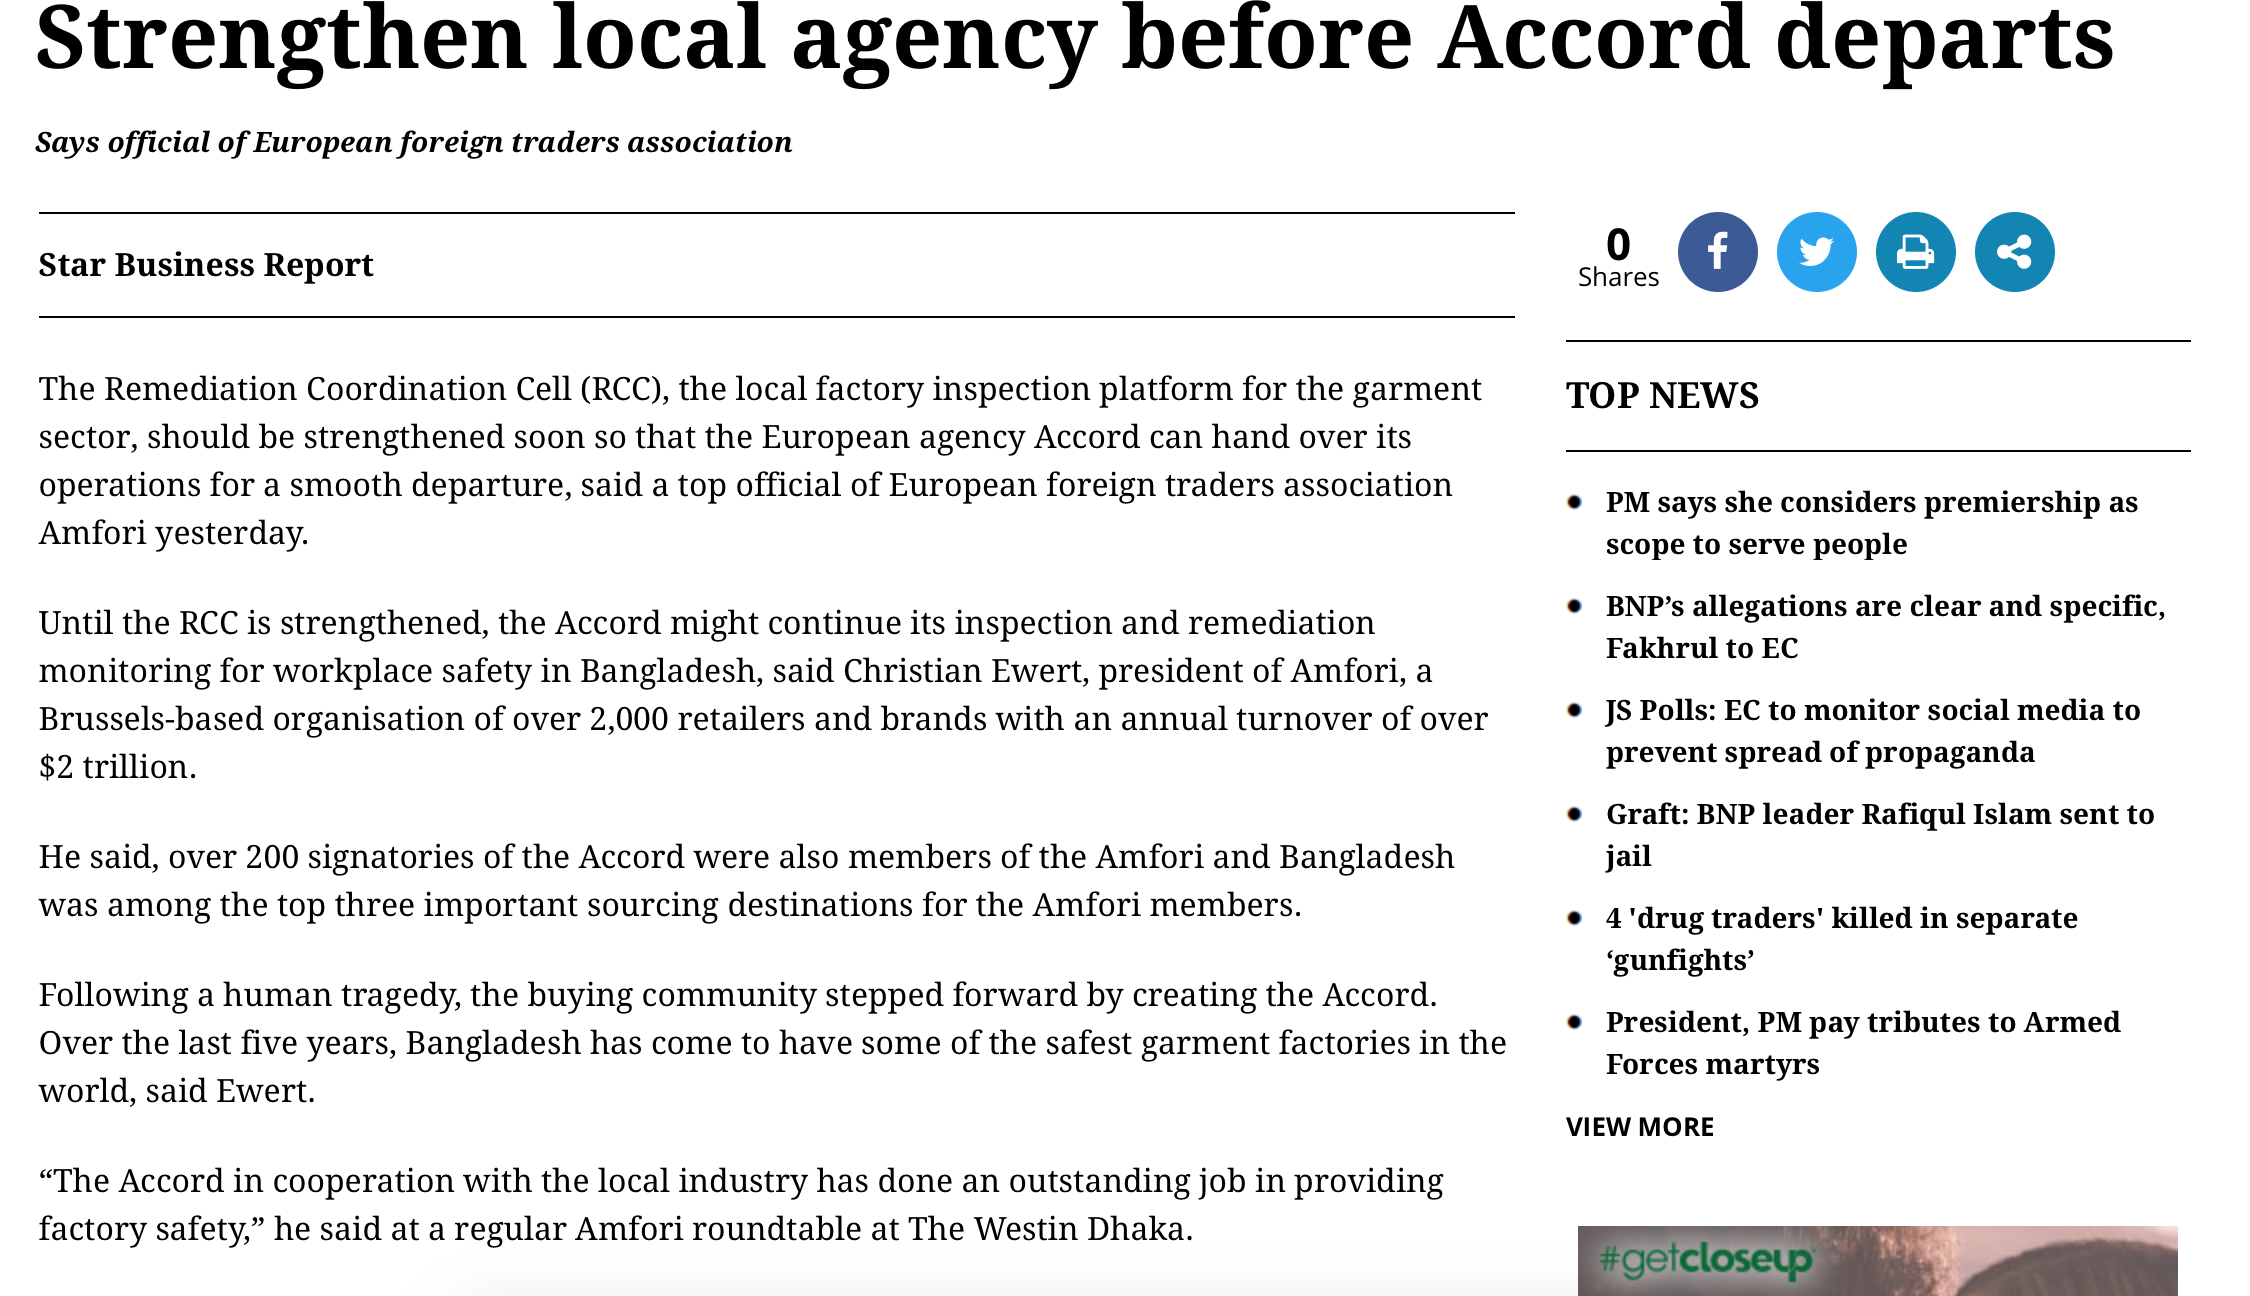 Daily Star, BD: Strengthen local agency before Accord